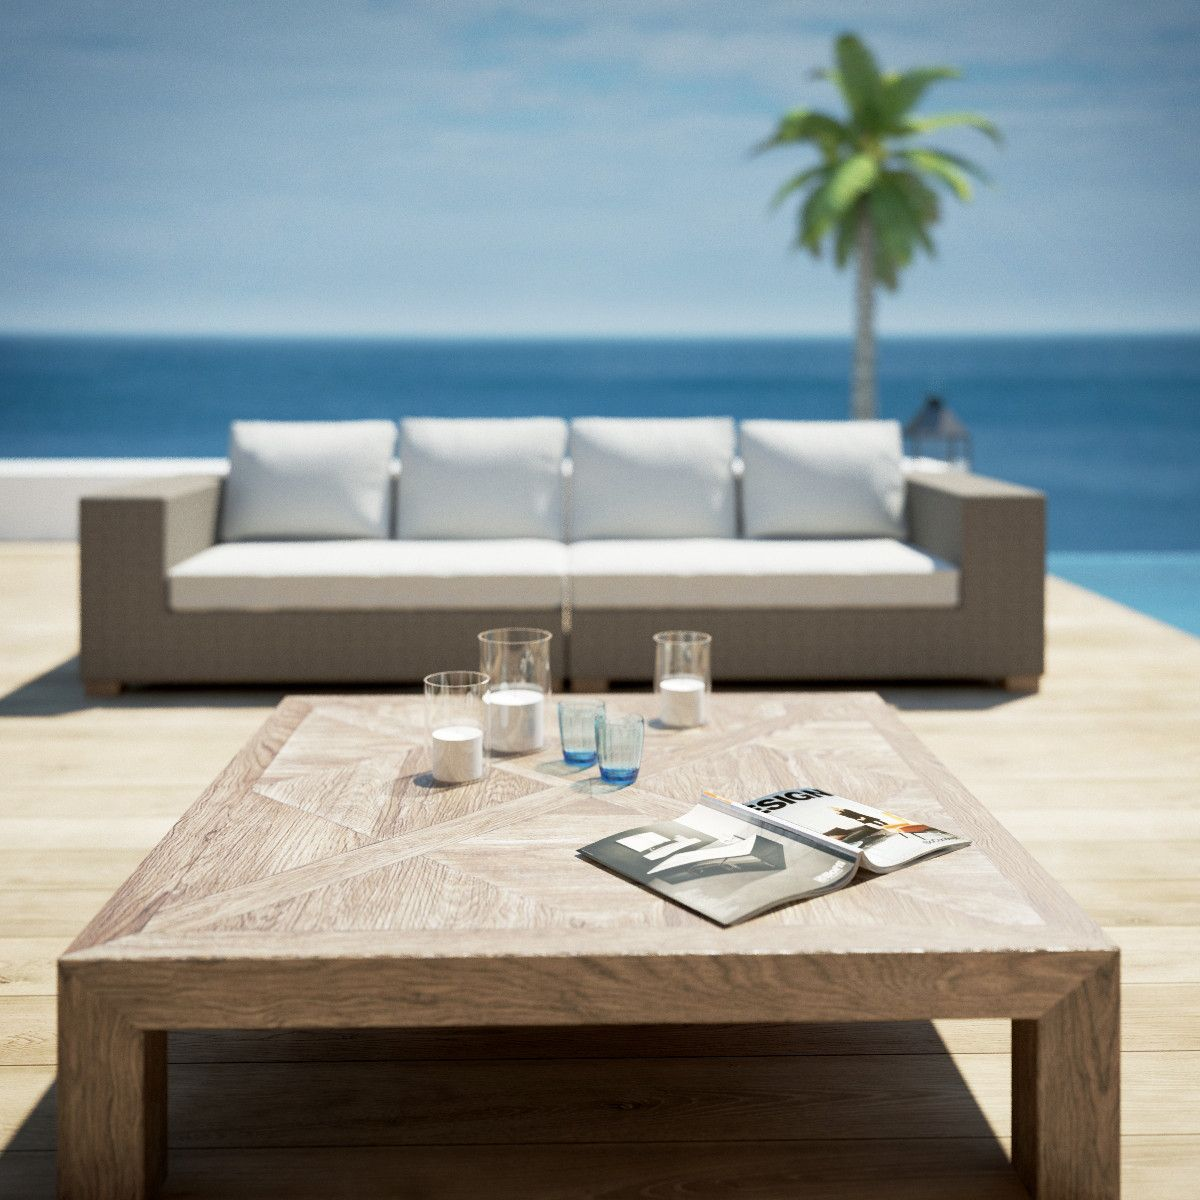 poolside garden furniture 3d model 3d model - Garden Furniture 3d